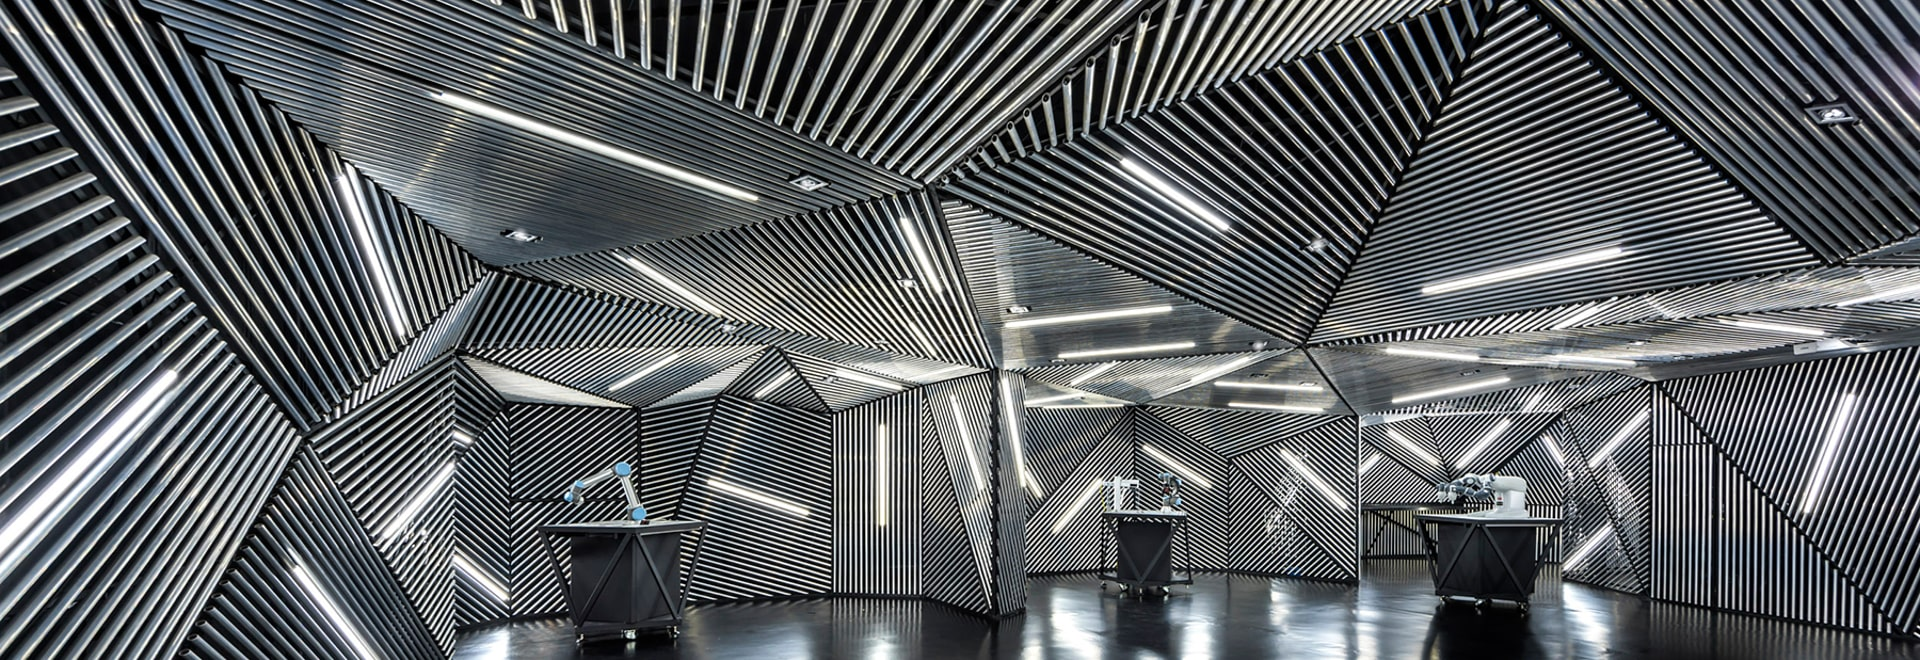 ministry of design's robotic facility in singapore features a hypnotic metallic skin